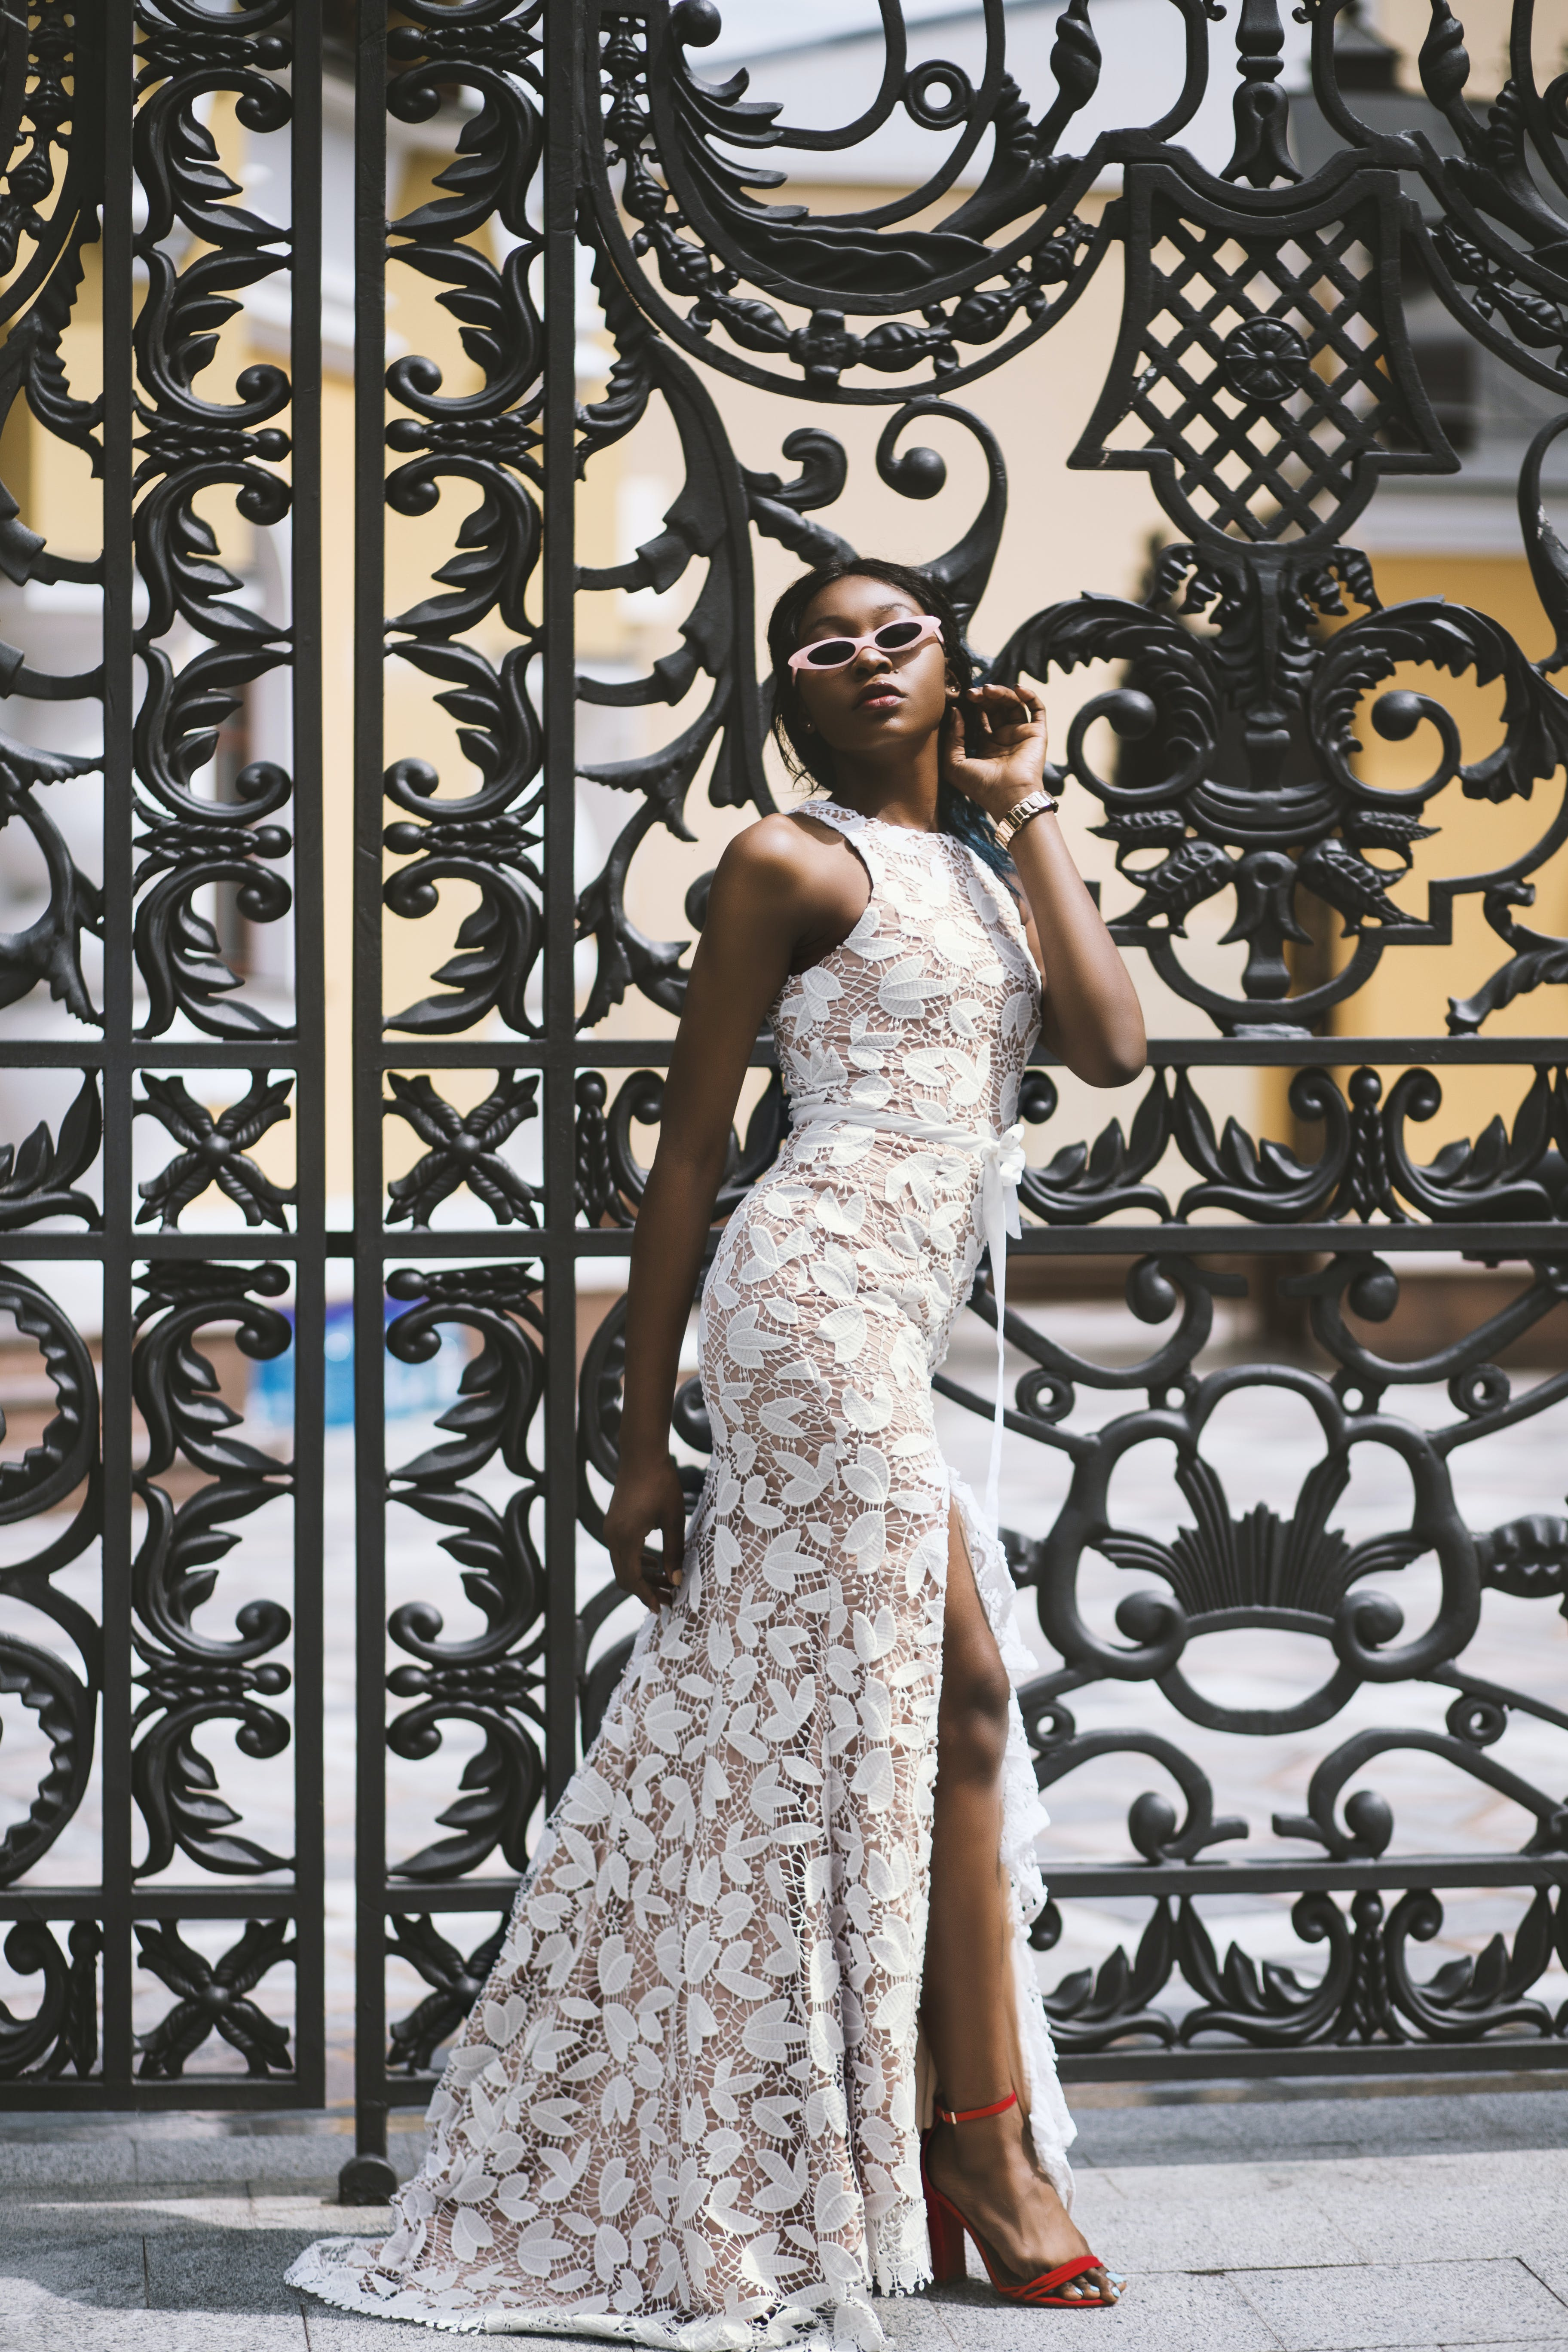 Woman Wearing White Floral Sleeveless Side-slit Maxi Dress Standing Beside Black Metal Gate